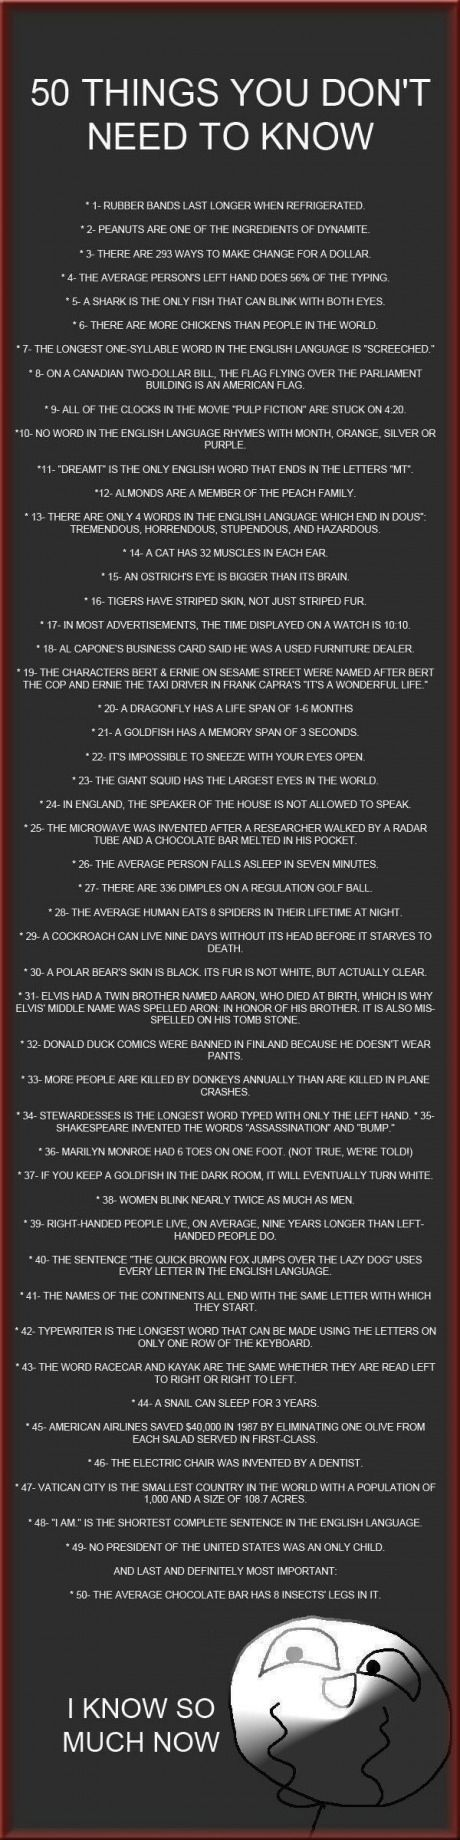 50 Things: Useless Facts, Mind Blown, Fun Facts, Useless Knowledge, Interesting Facts, 50Thing, Random Facts, 50 Things